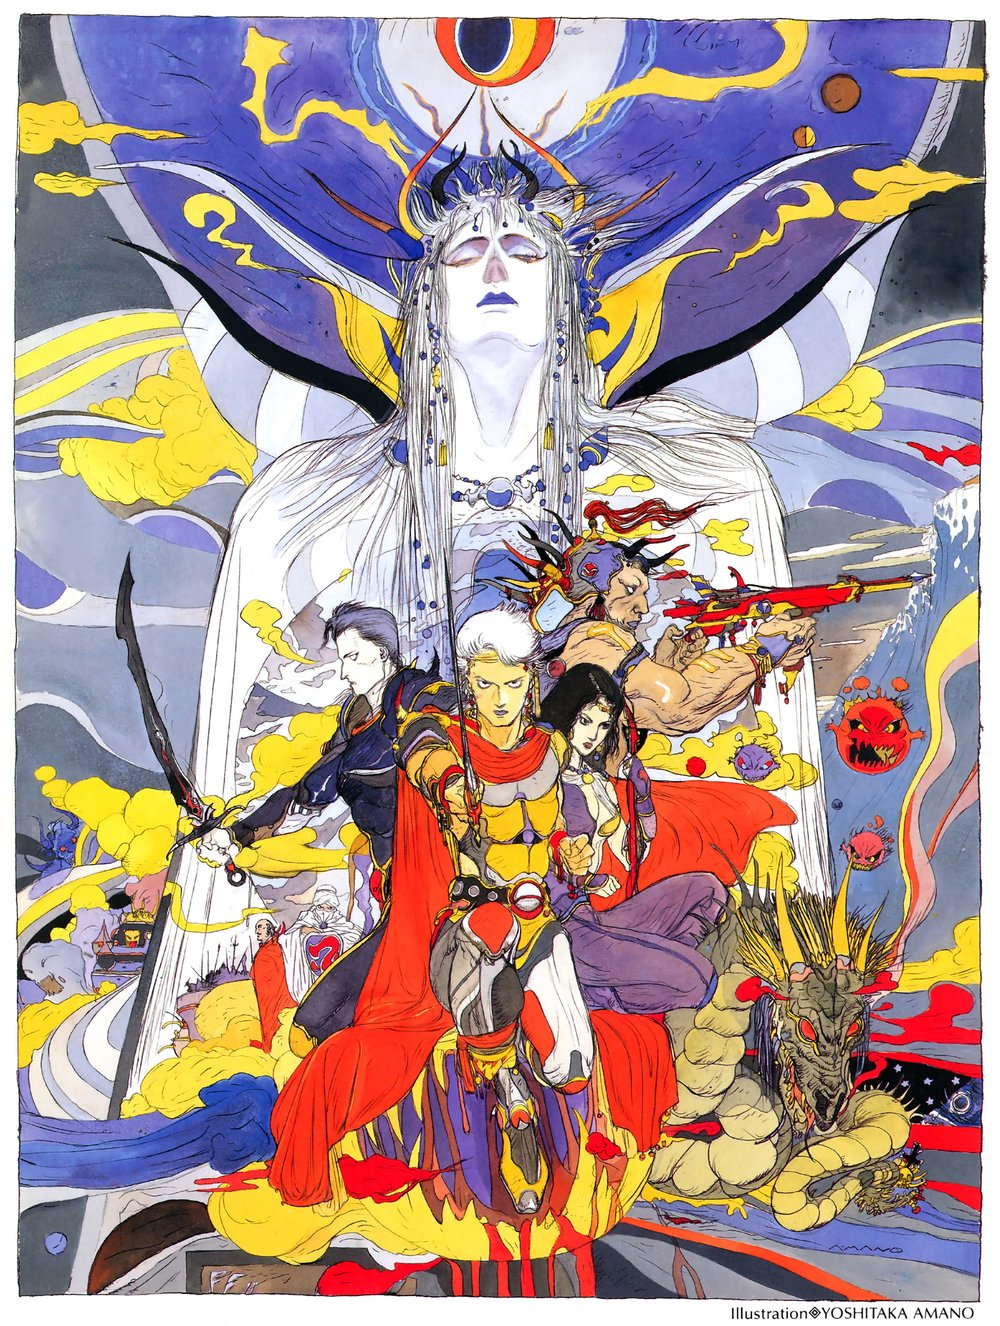 bomb emperor frioniel guy josef and others final fantasy and final fantasy ii drawn by amano yoshitaka  caaada1000bb6719eeacbd5879453802 - Classic Video Game Art vol. II